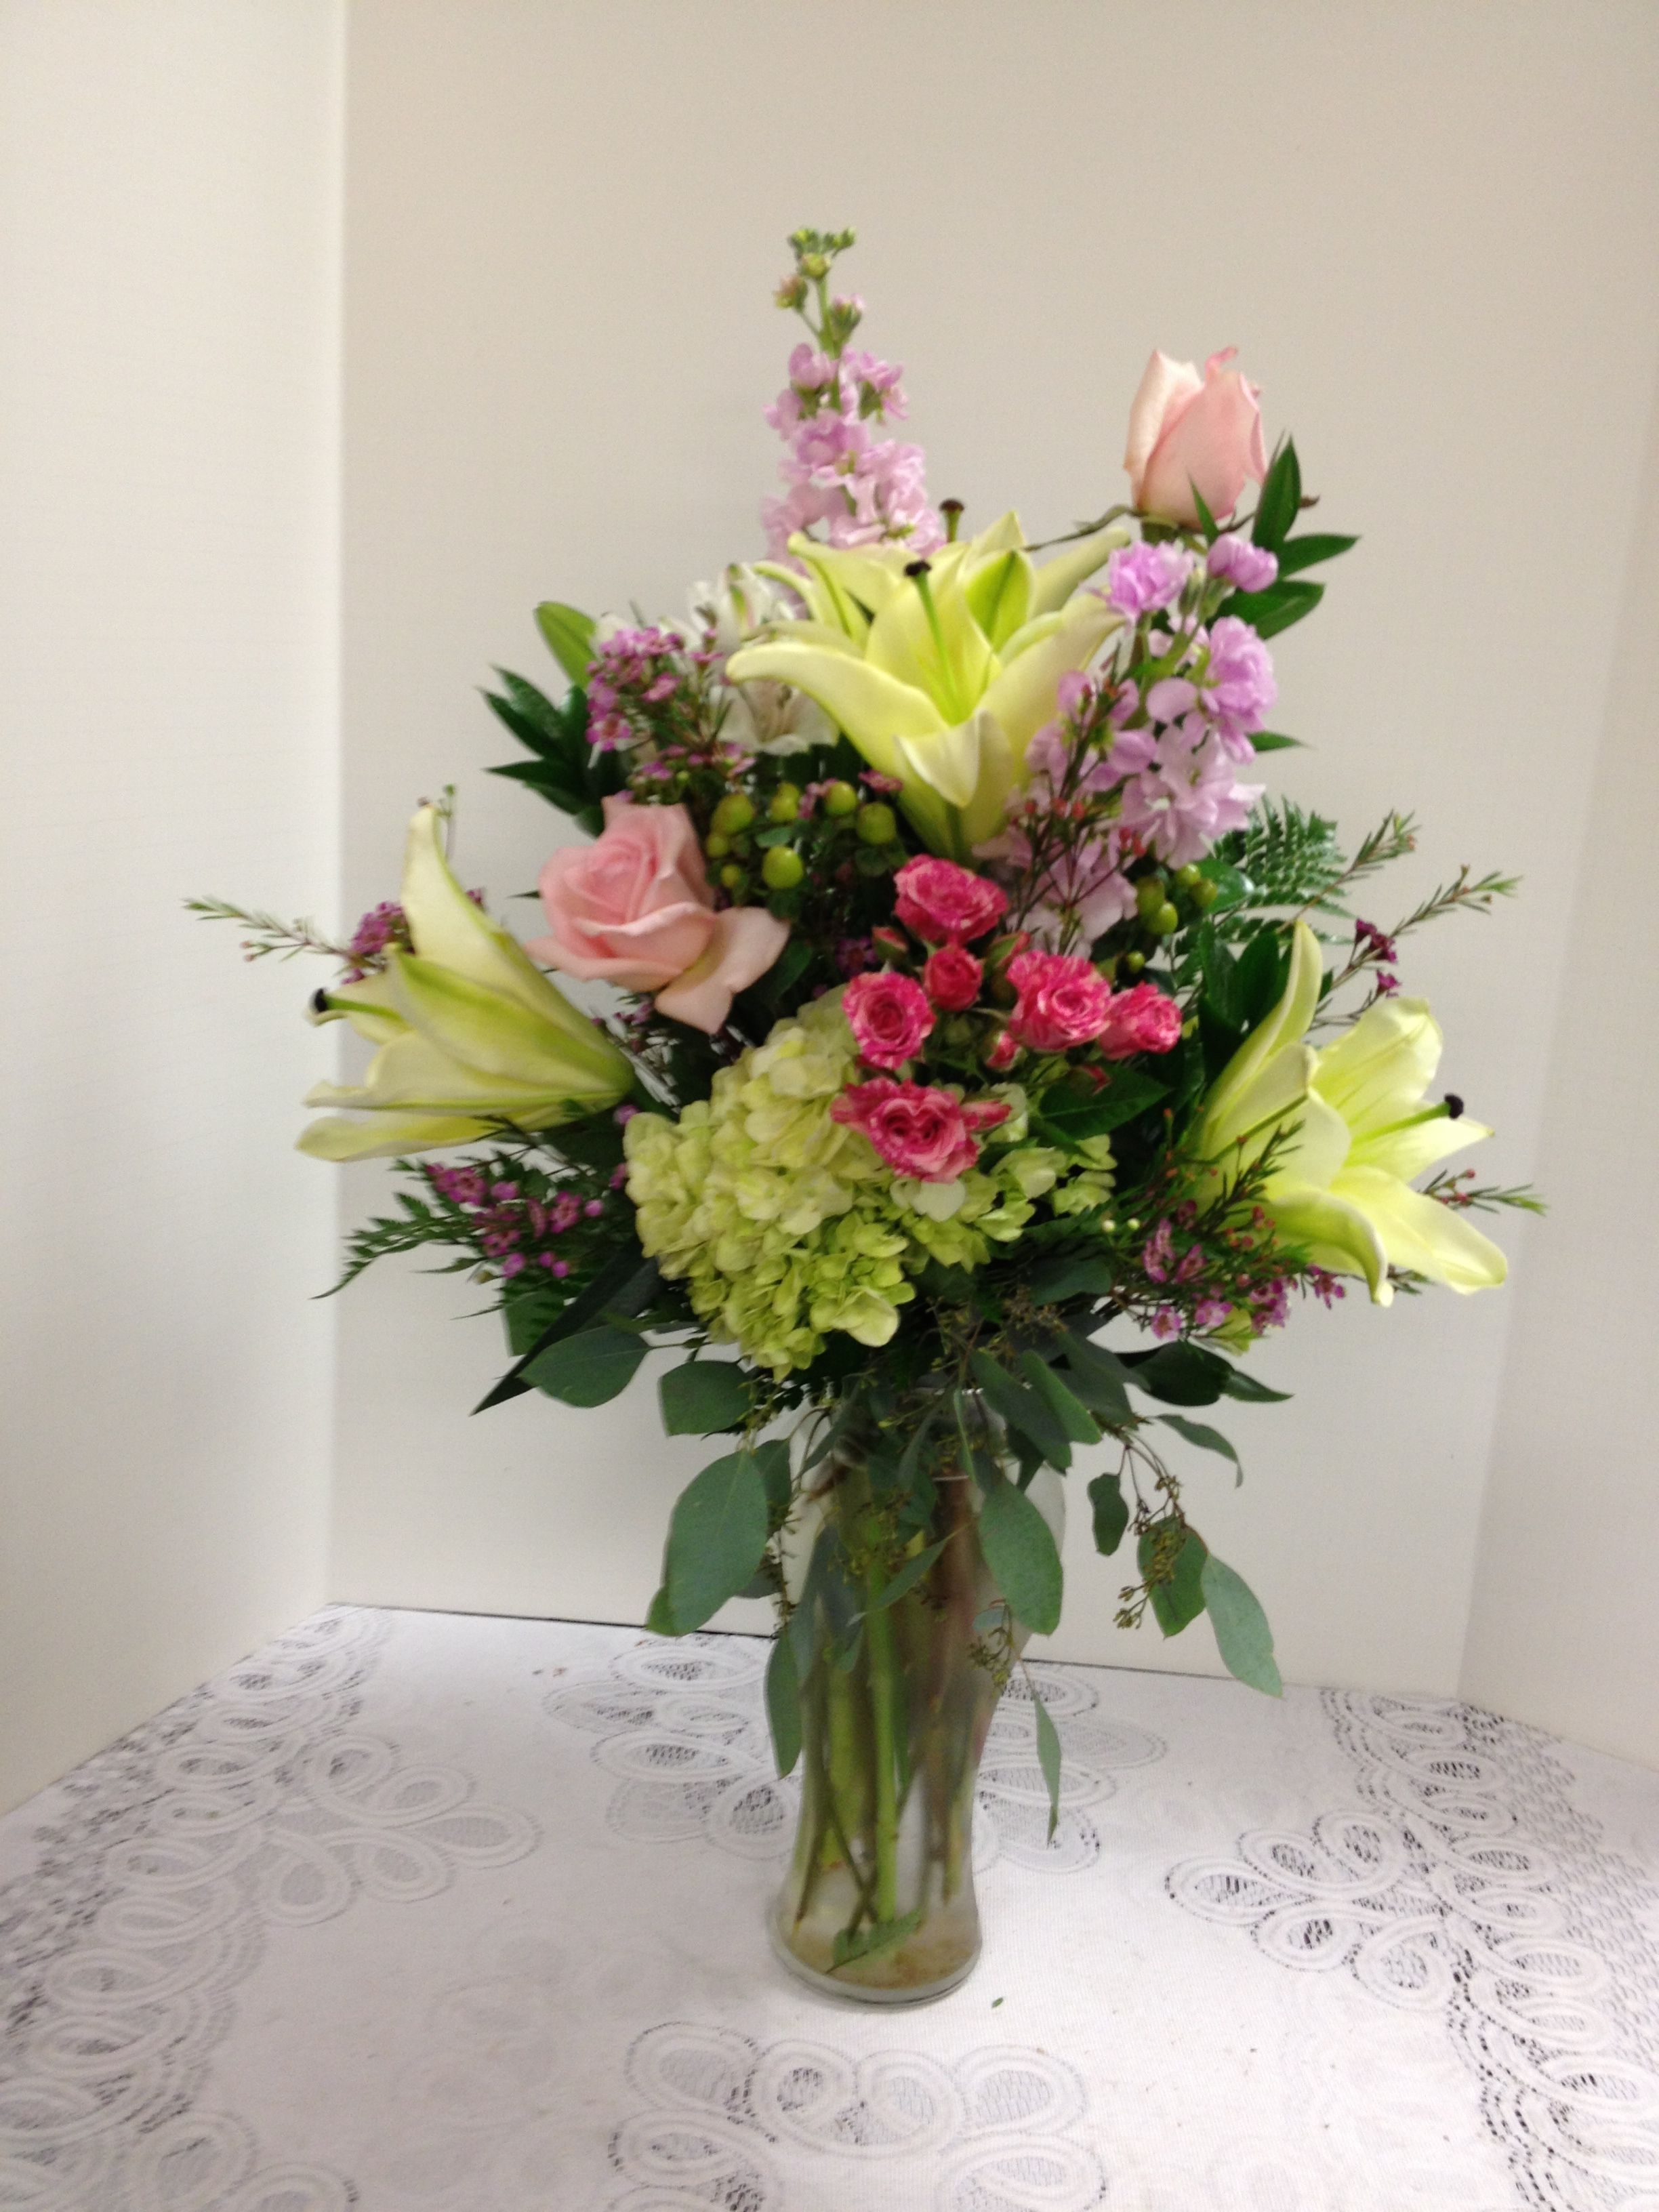 Local Florist Near Me For Flowers (With images) Flower